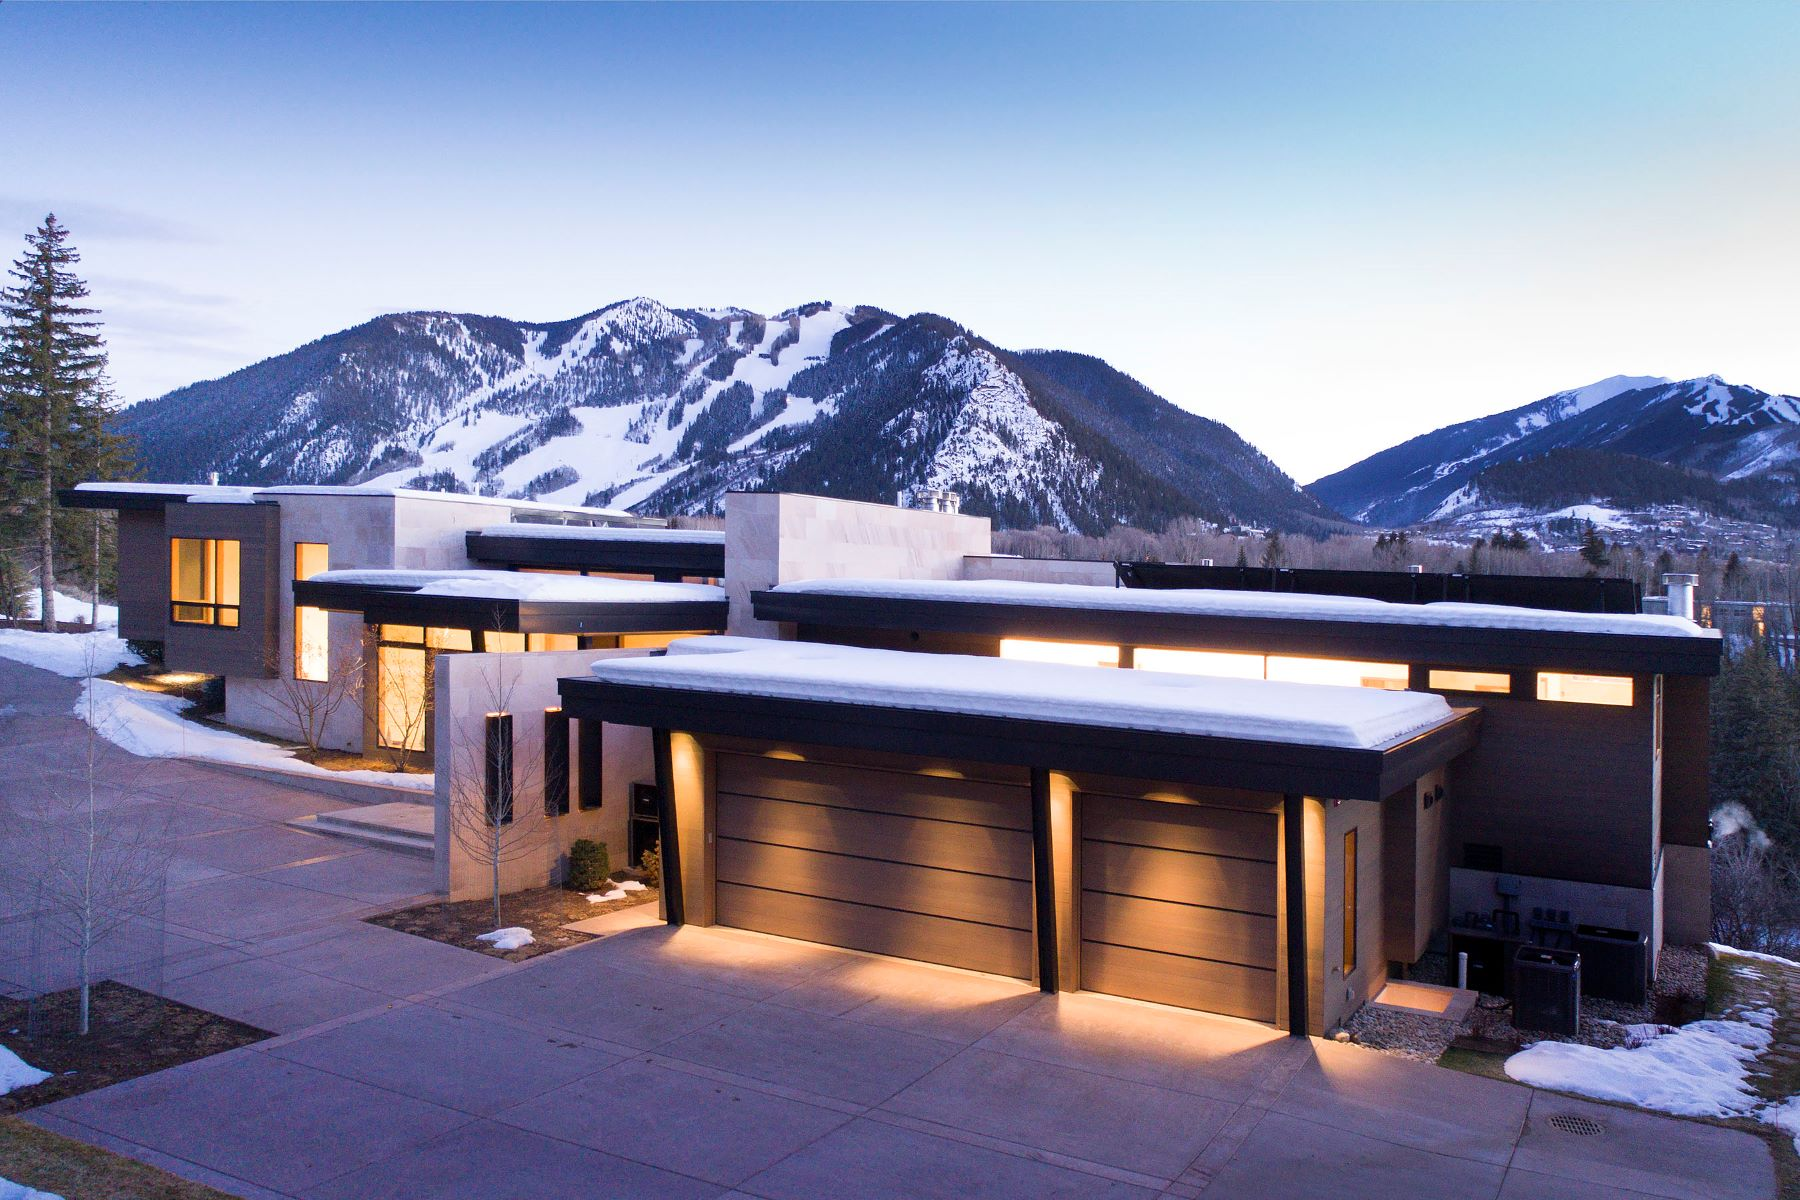 Single Family Home for Active at New Willoughby Way Contemporary 720 Willoughby Way Aspen, 81611 United States